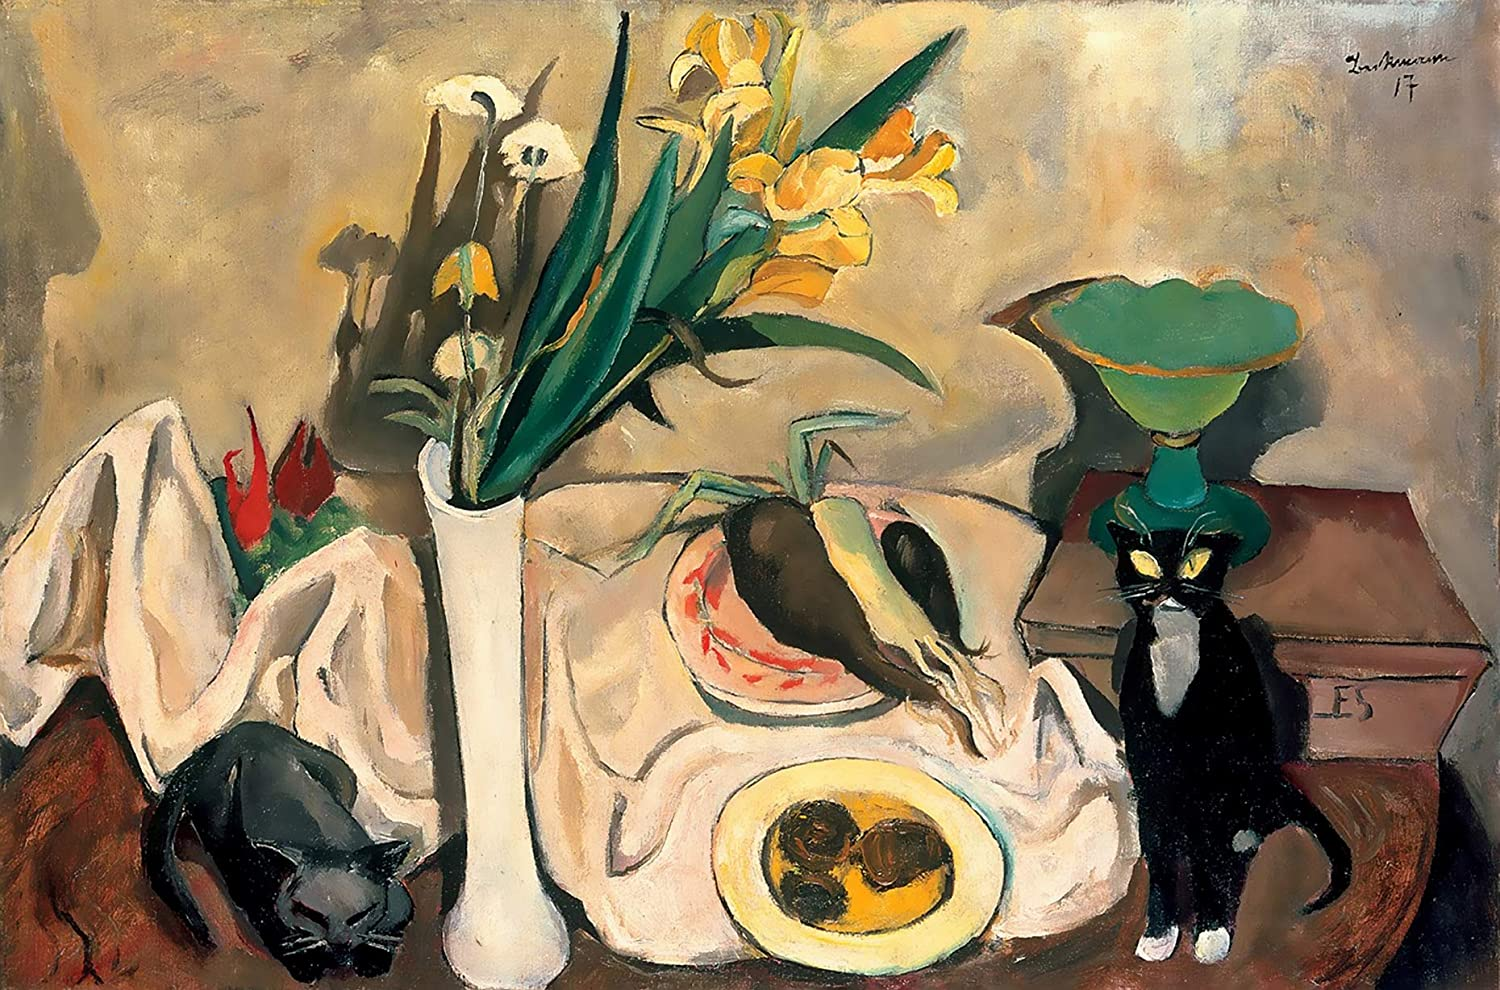 Still Life with Cats, by Max Beckman